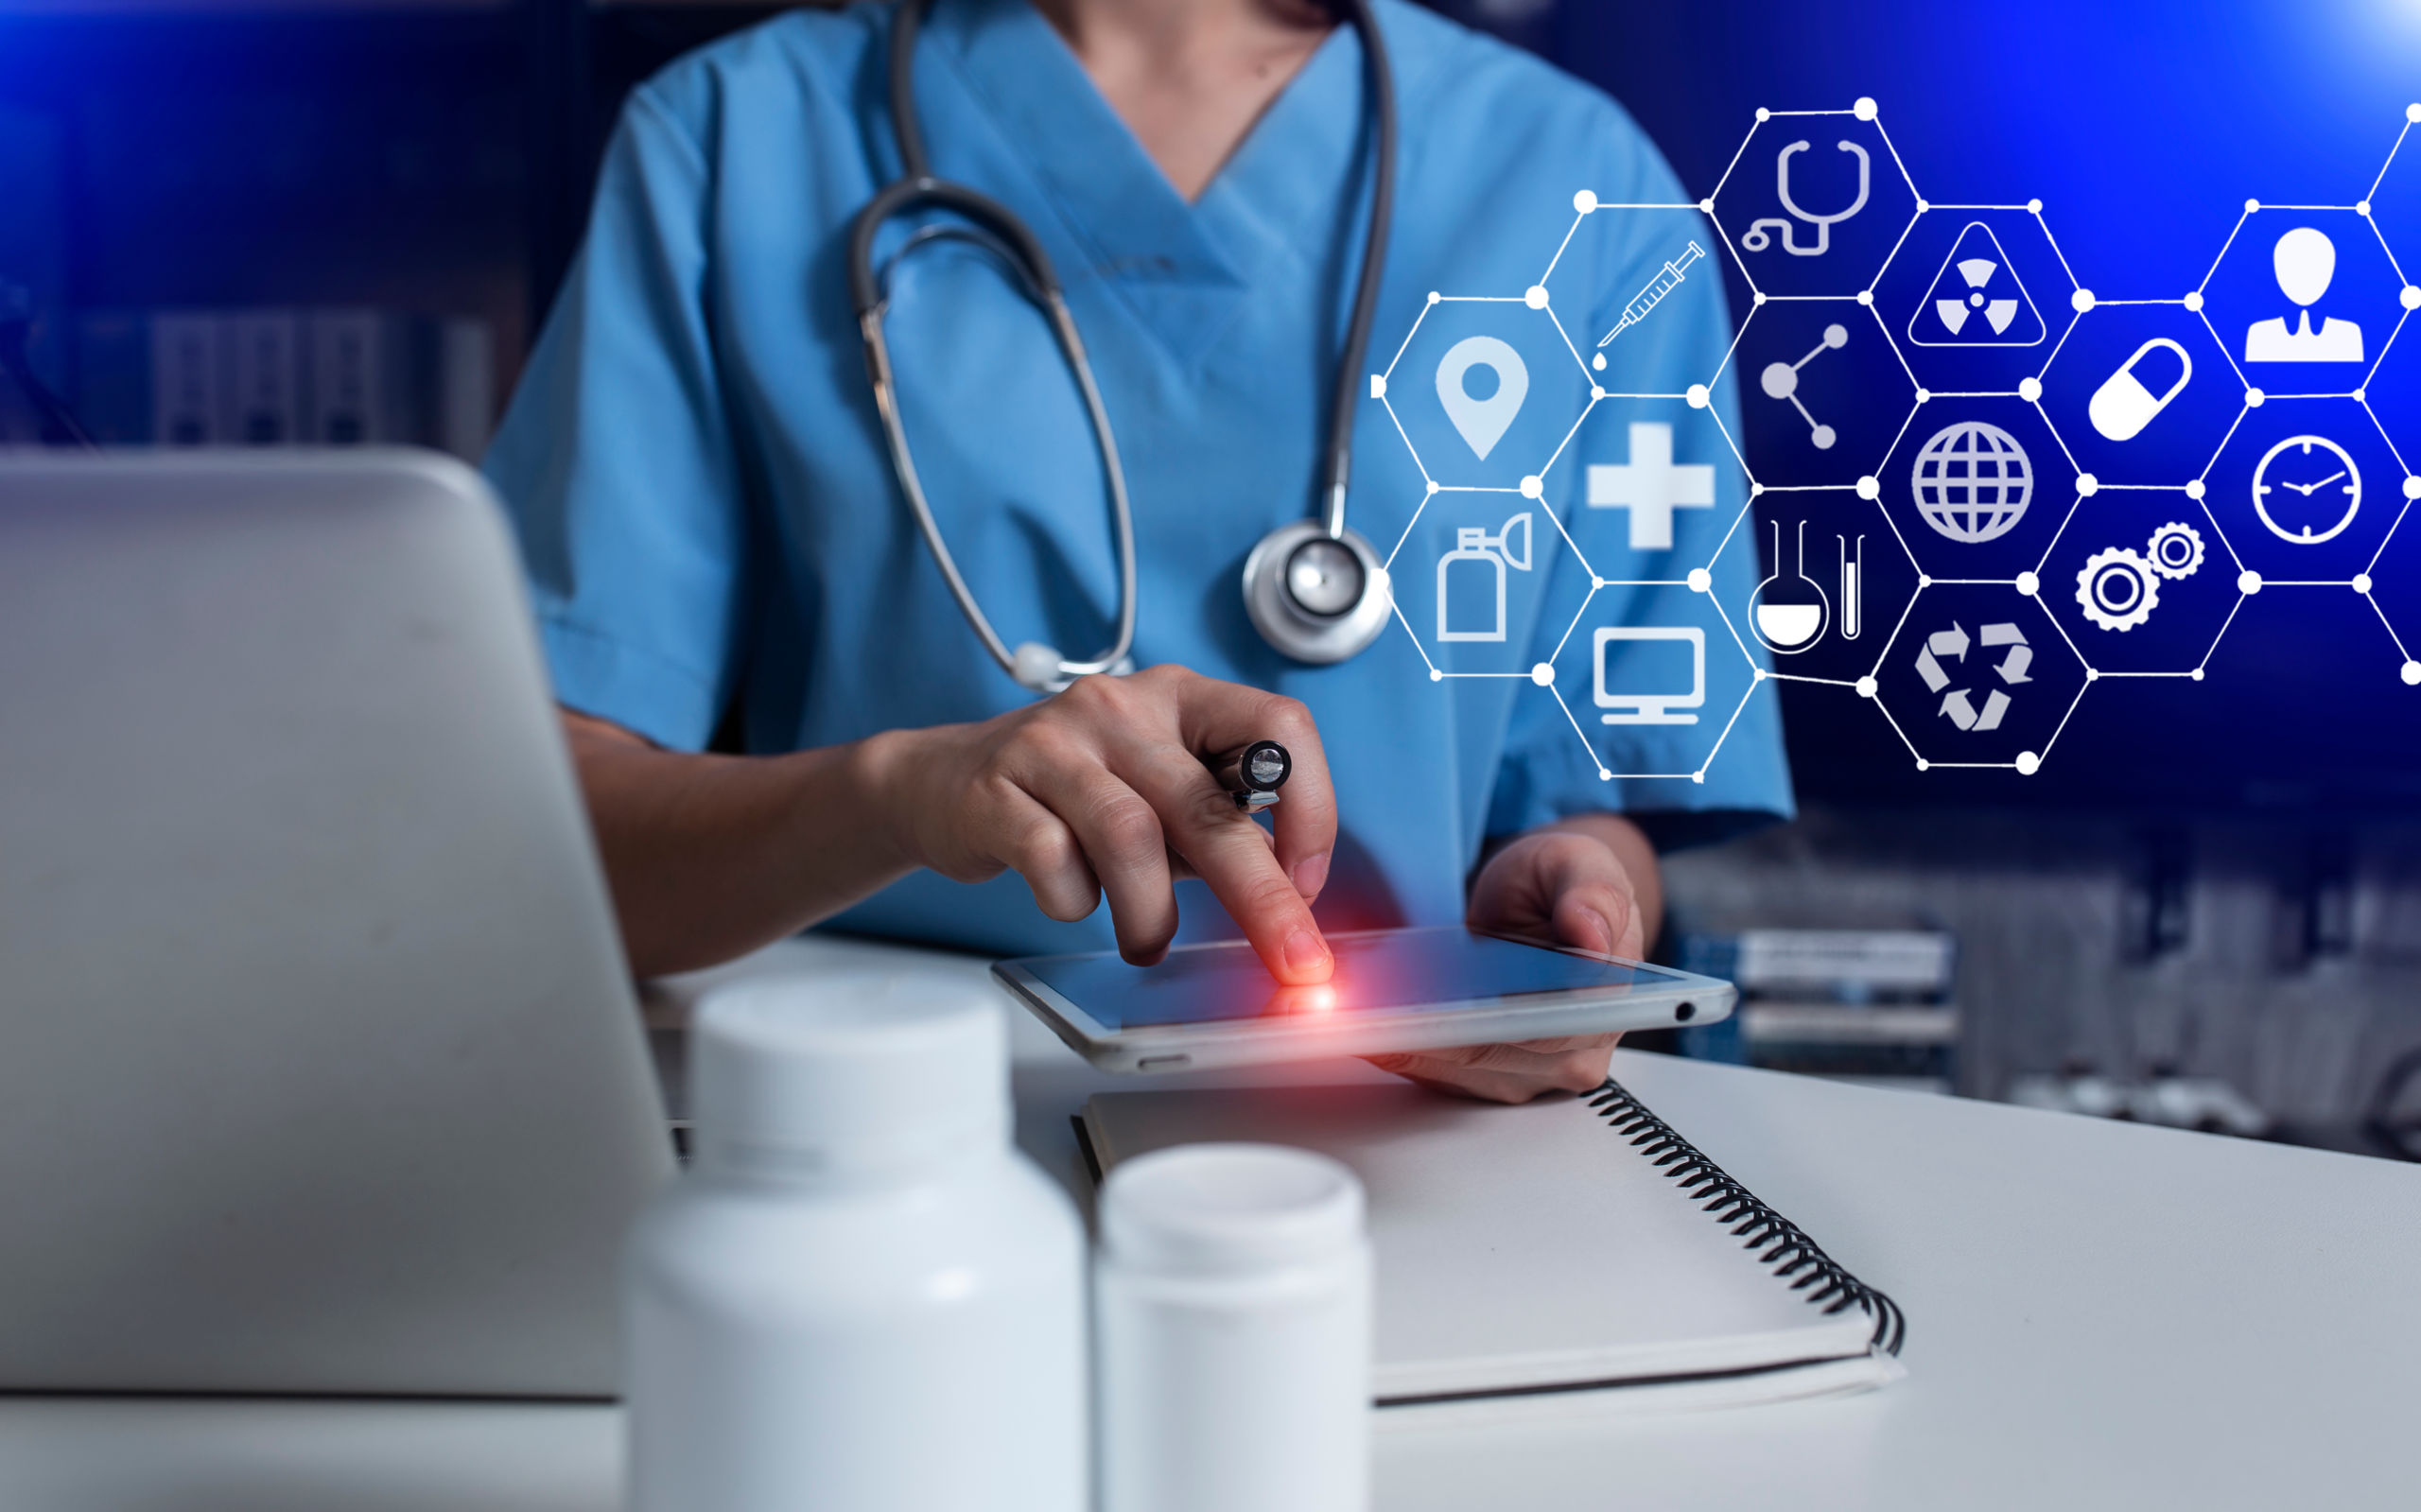 Global Share of RFID in Healthcare Market Expecting 21.5% CAGR Growth, to Reach US $7,700 Million by 2026